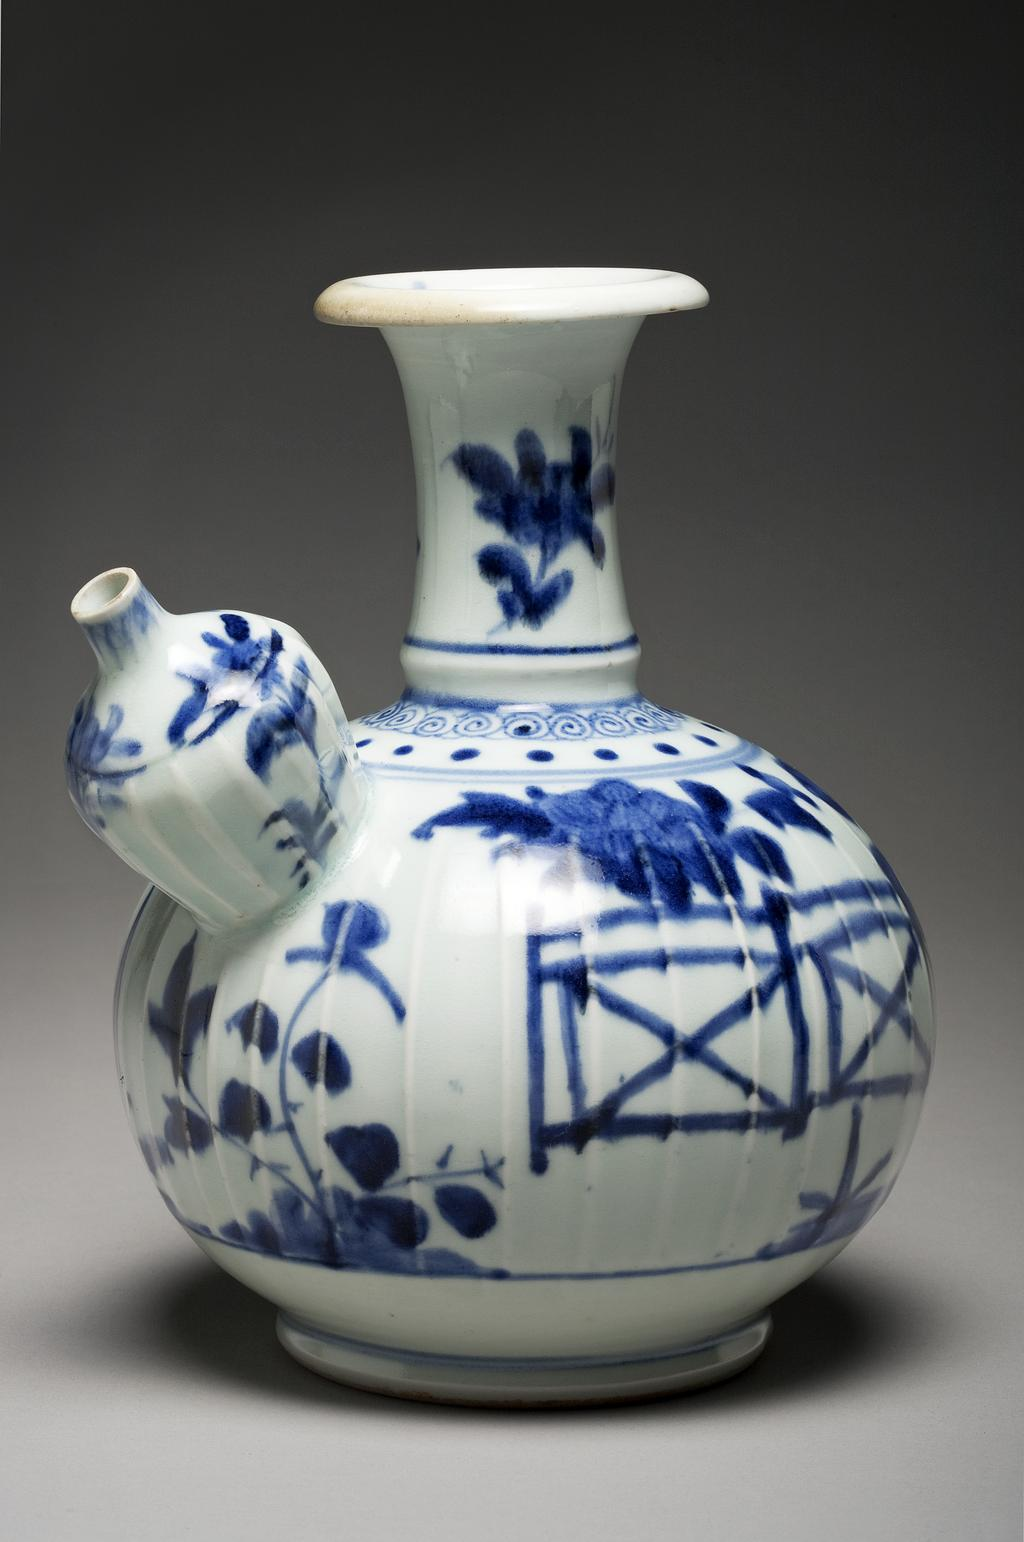 An image of Kendi Vessel. Hard-paste porcelain, moulded, assembled, and painted underglaze in blue with plants in a fenced garden, height 20.7 cm, circa 1700 to 1710. Japan.